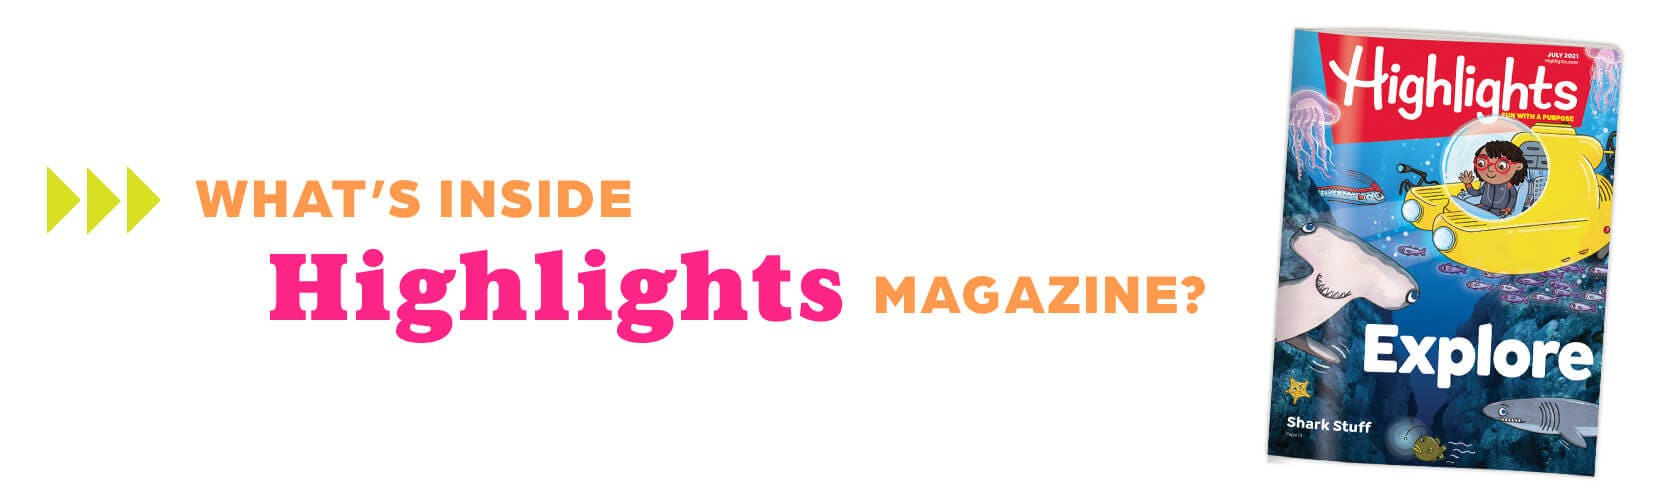 What's inside Highlights magazine?